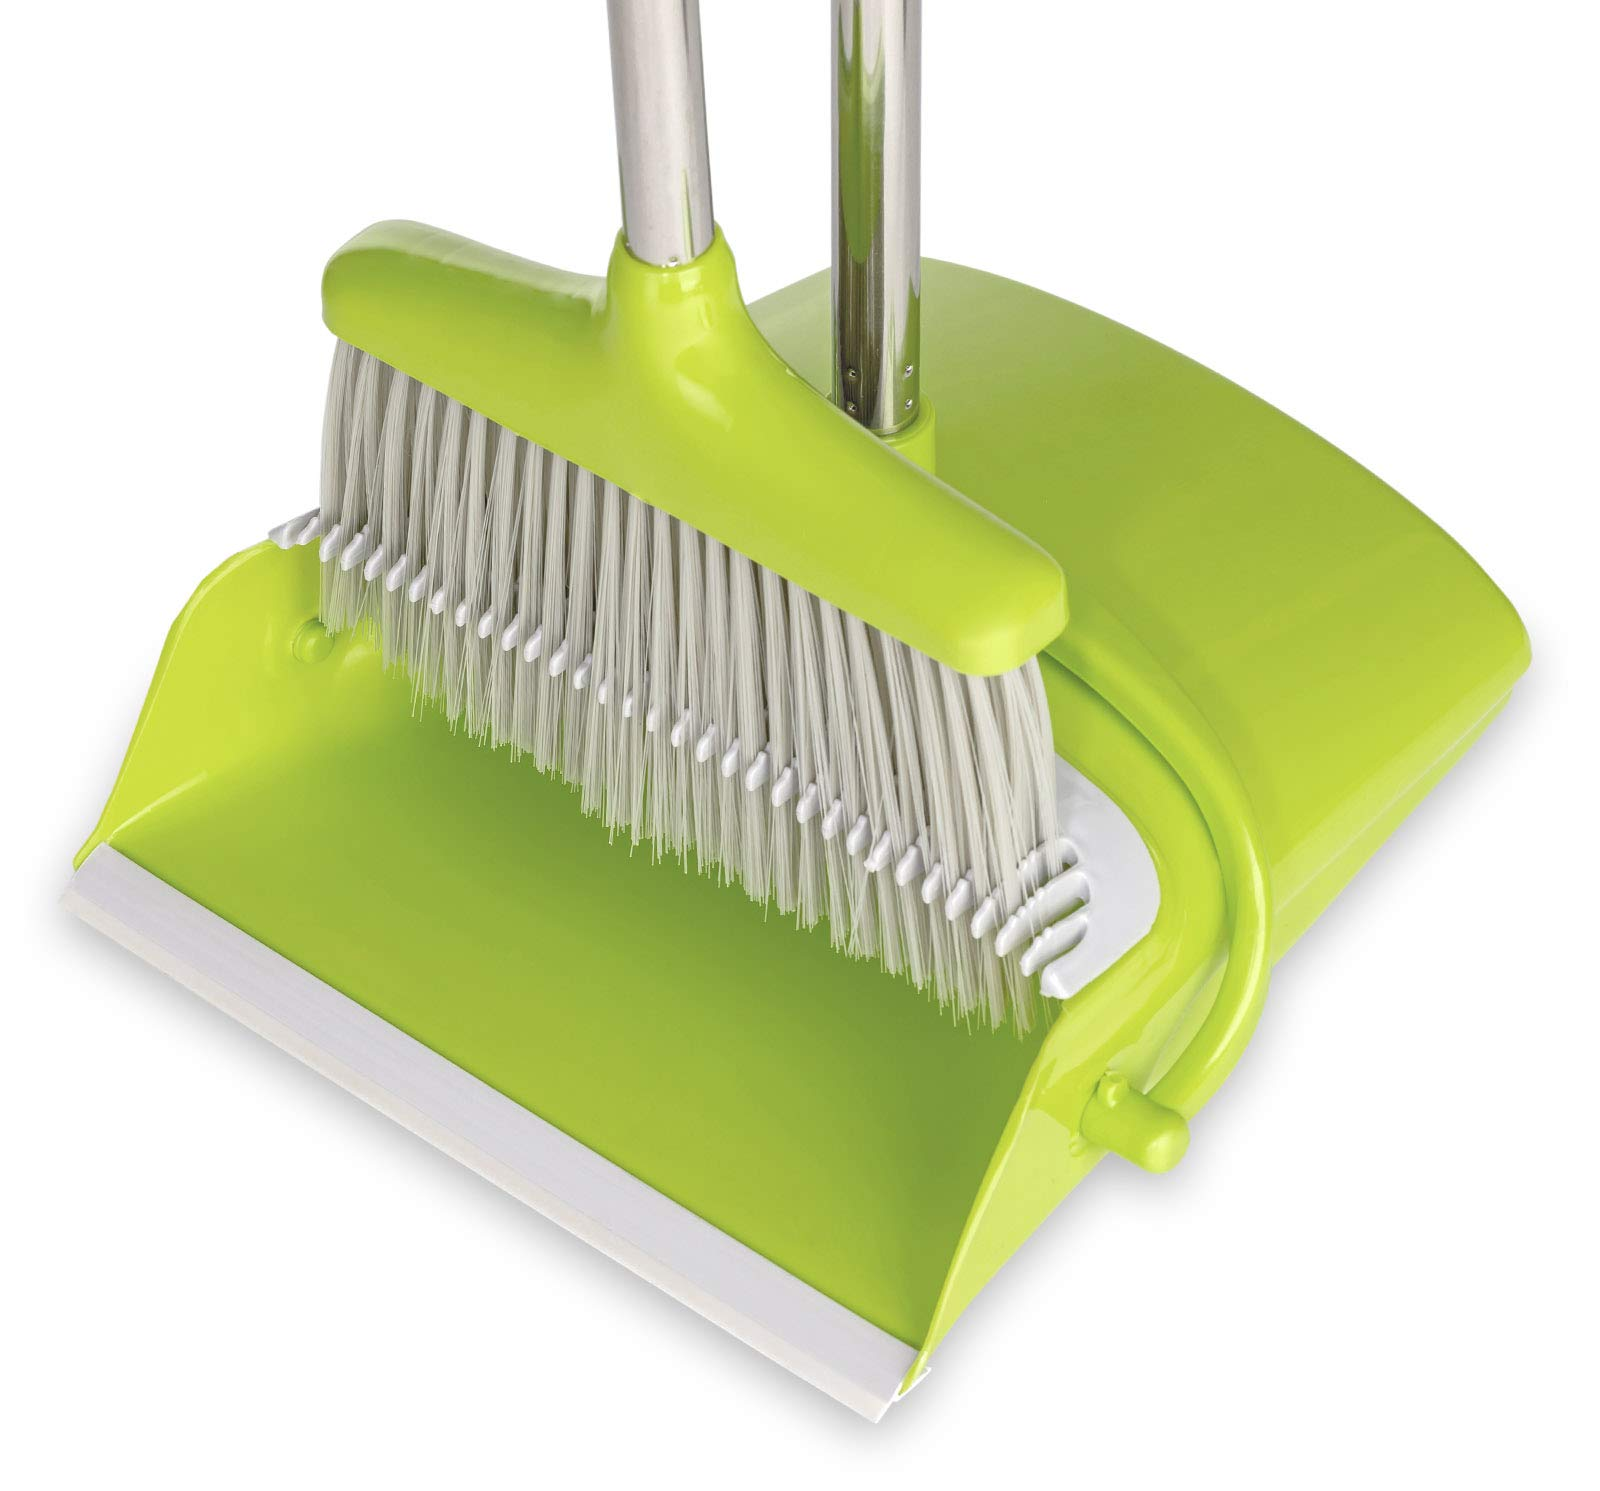 BristleComb Broom and Dustpan Set - Variable Handle Length Broom and Dustpan - Includes: Hand Brush and Dustpan Combo - Lightweight and Upright Stand for Cleaning Your Kitchen, Home, and Lobby (Green) by JFB Home Products (Image #3)